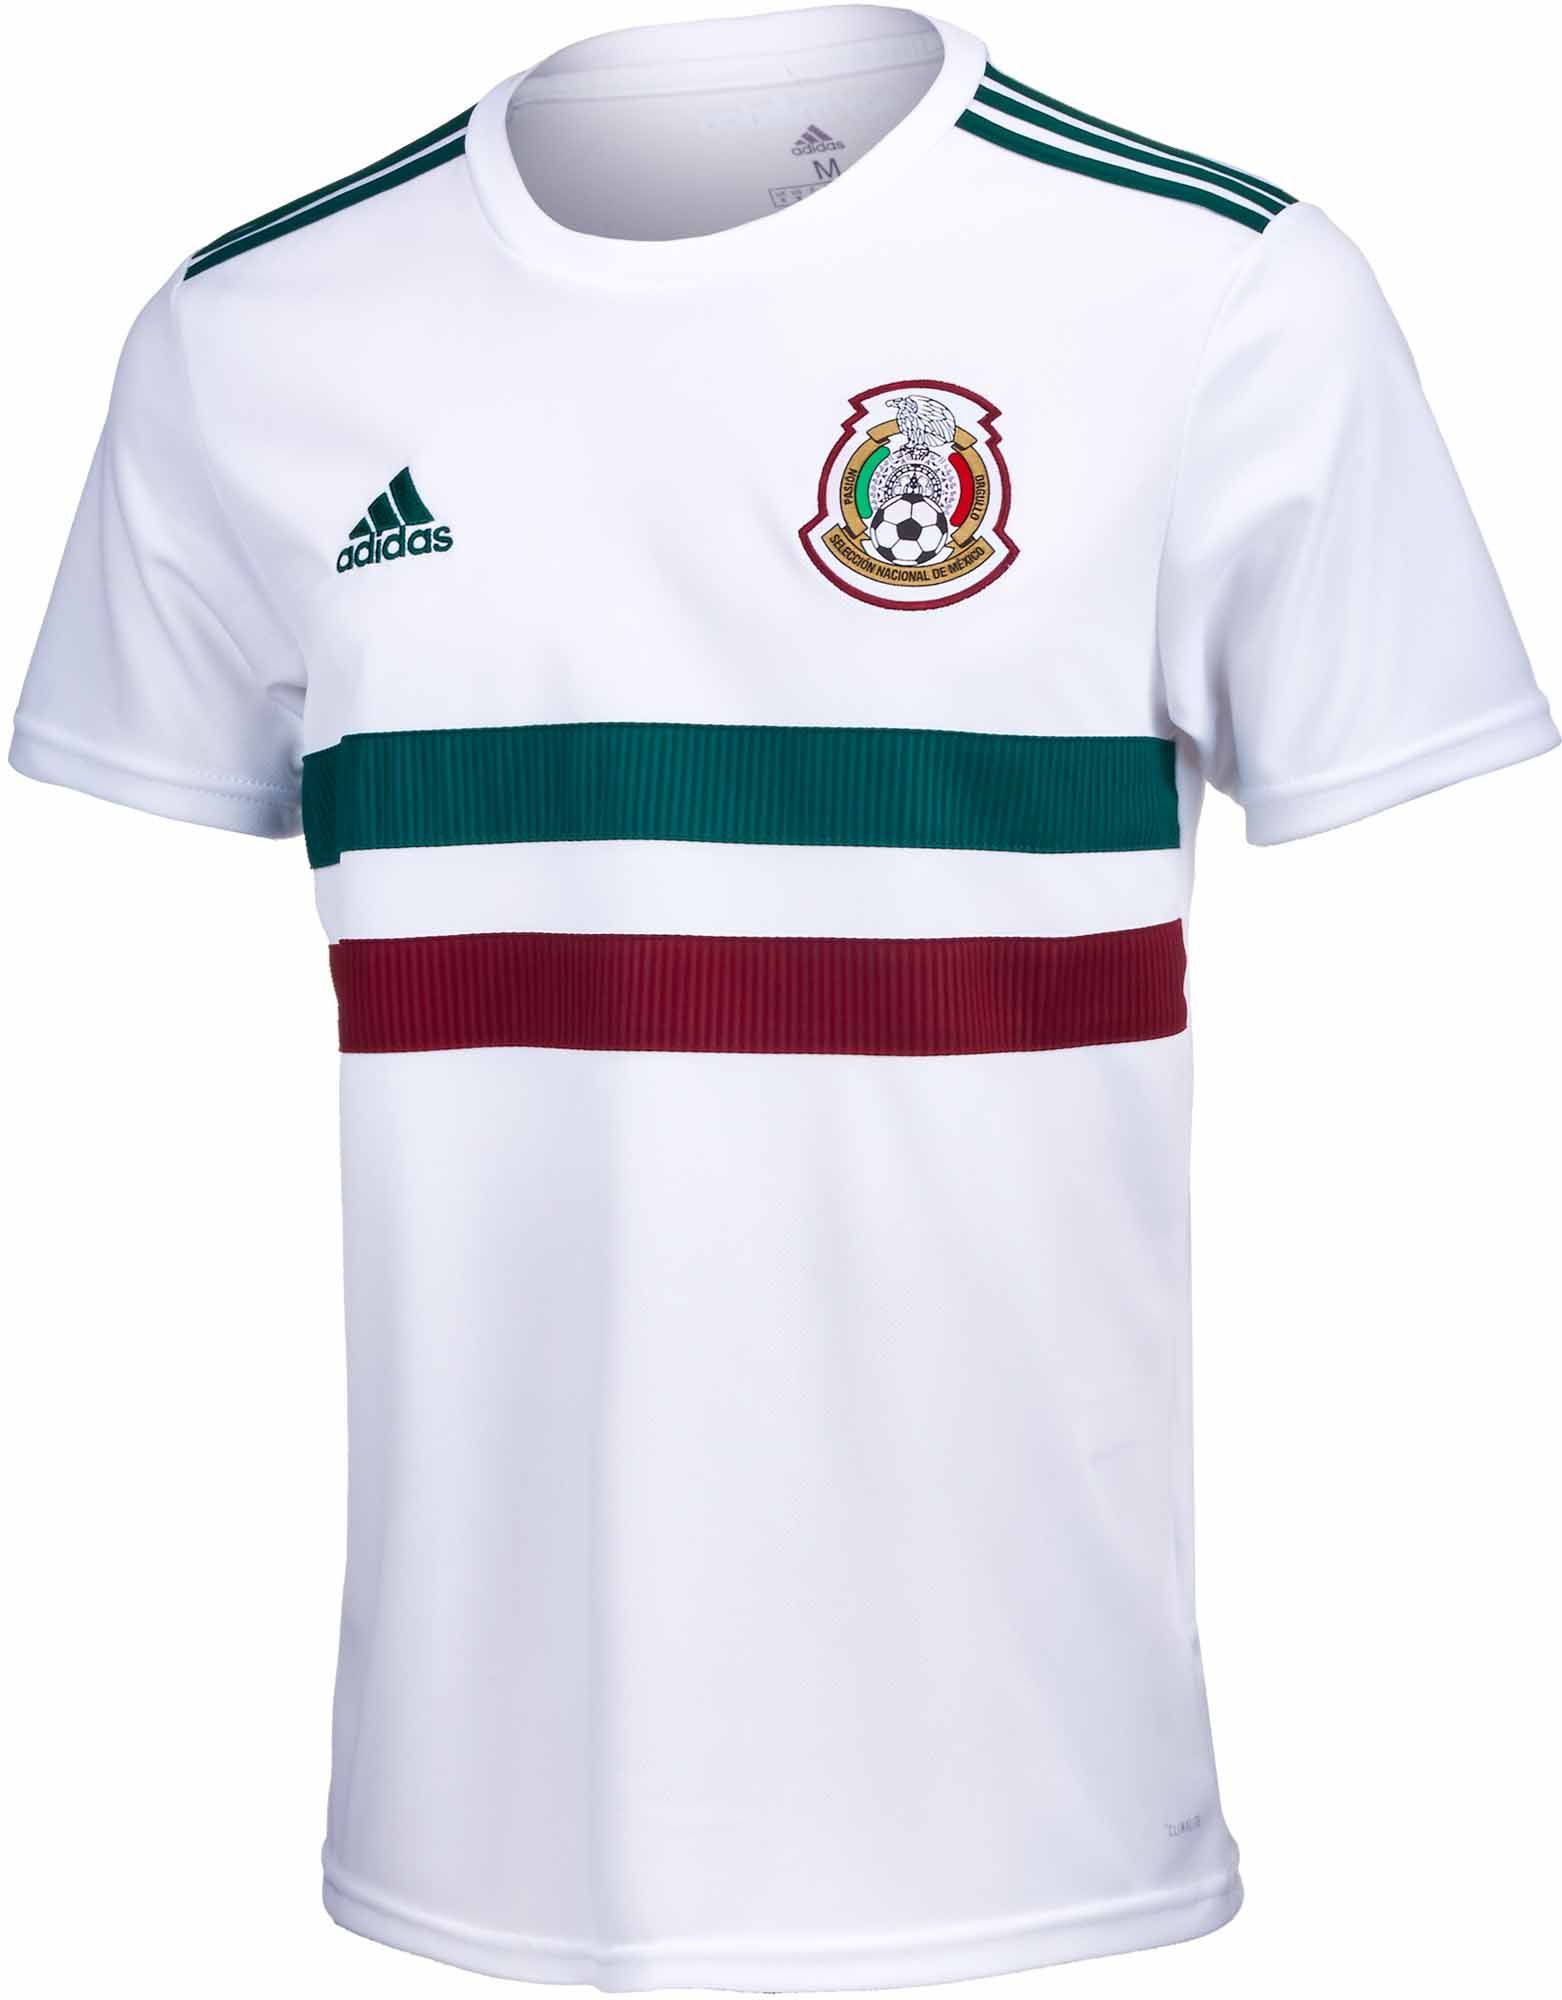 2018 19 adidas Mexico Away Jersey. Buy it from SoccerPro 57bf3ea05